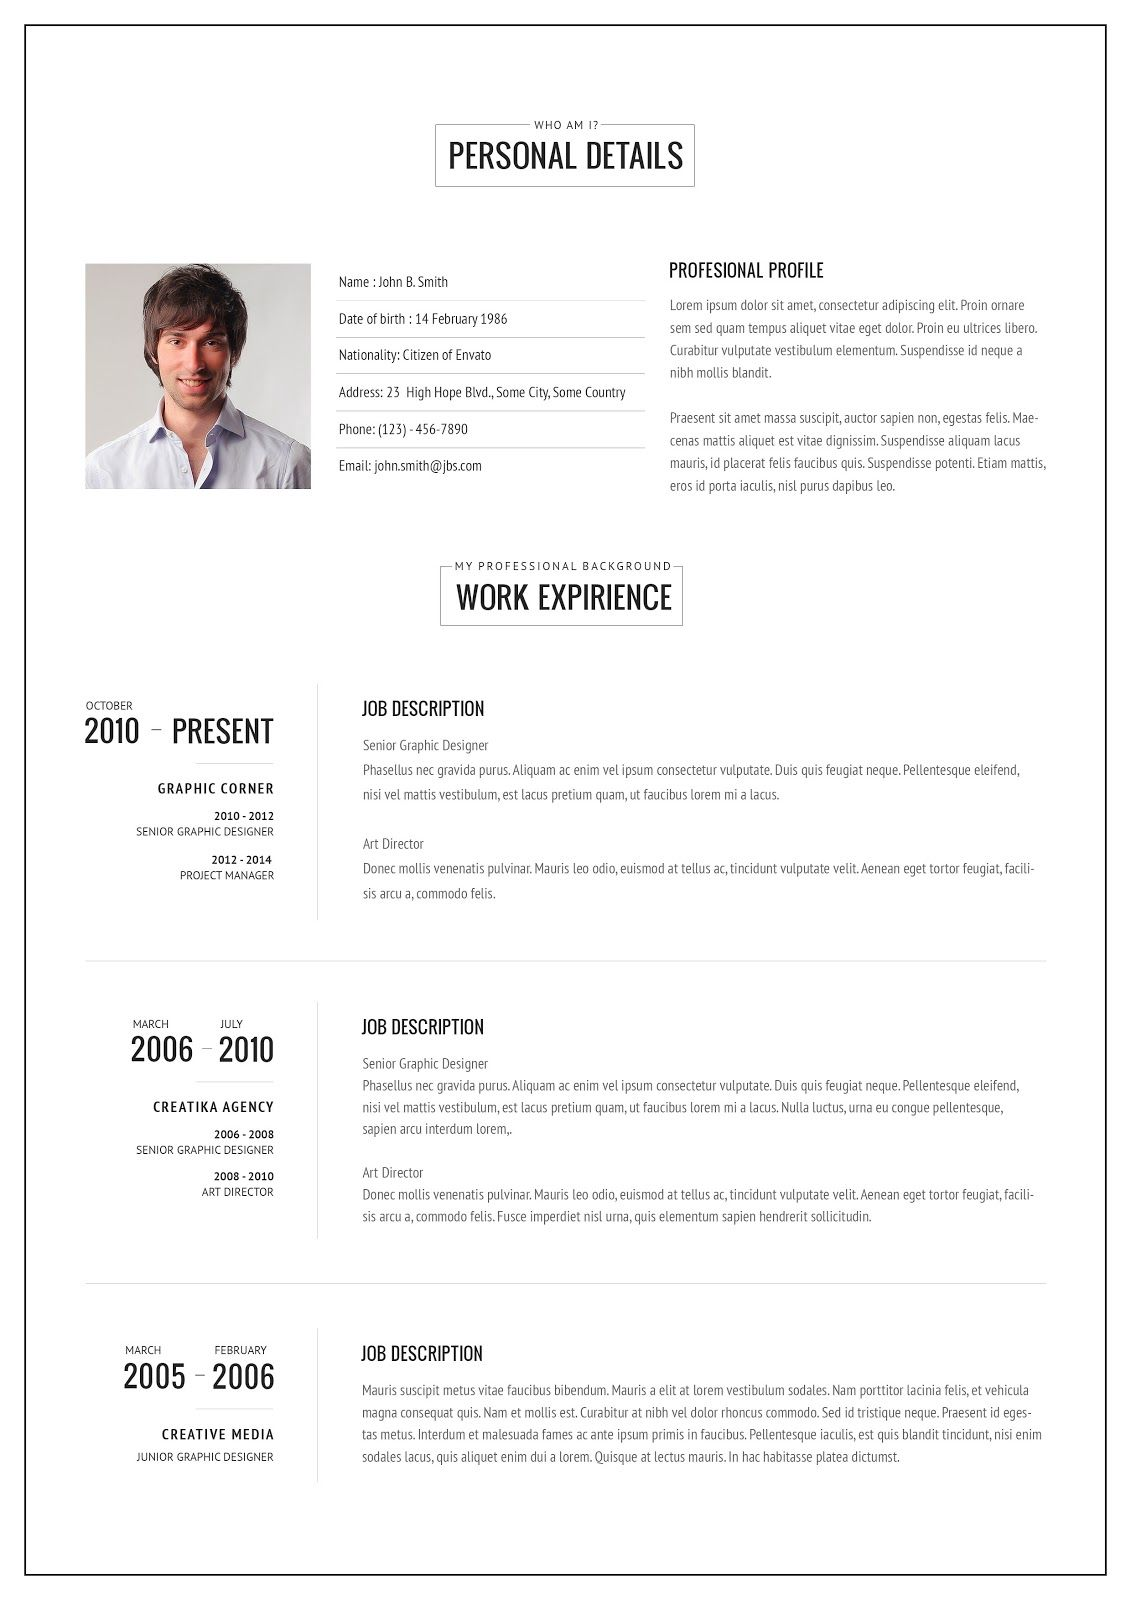 resume templates and its importance